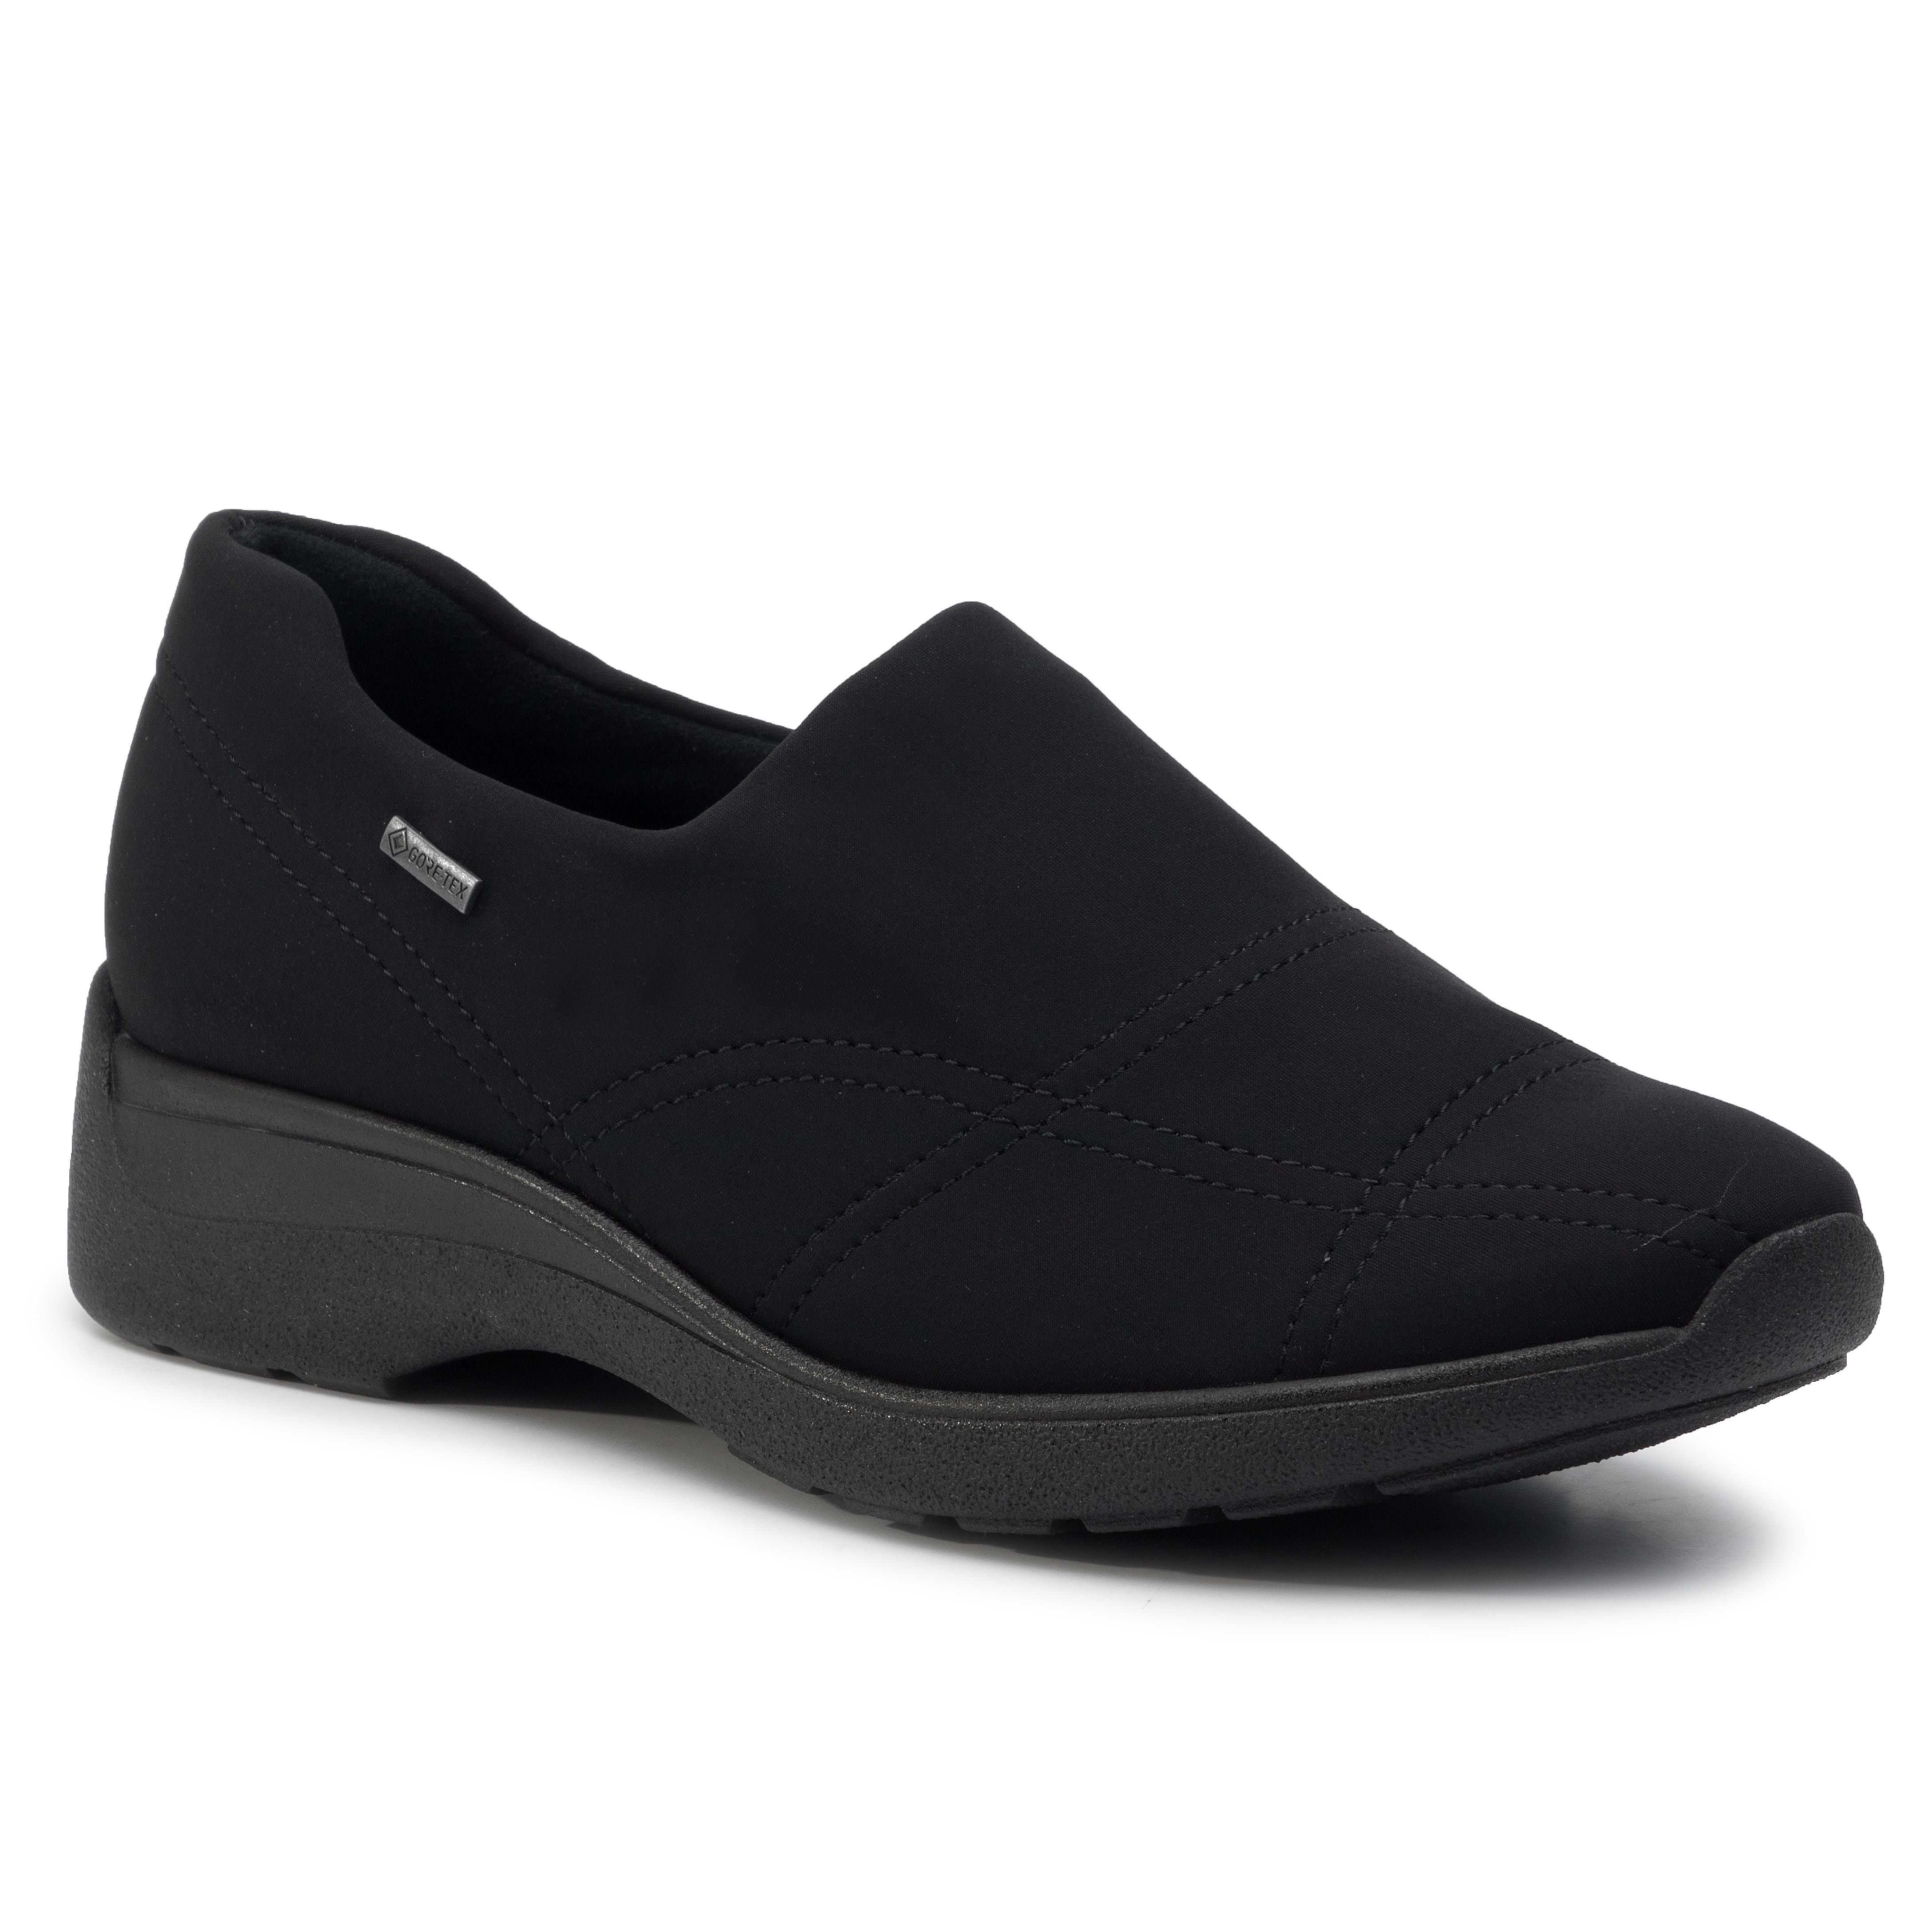 Black Low Women's Lords 395 Edeo 3413 Shoes hCxtQrds